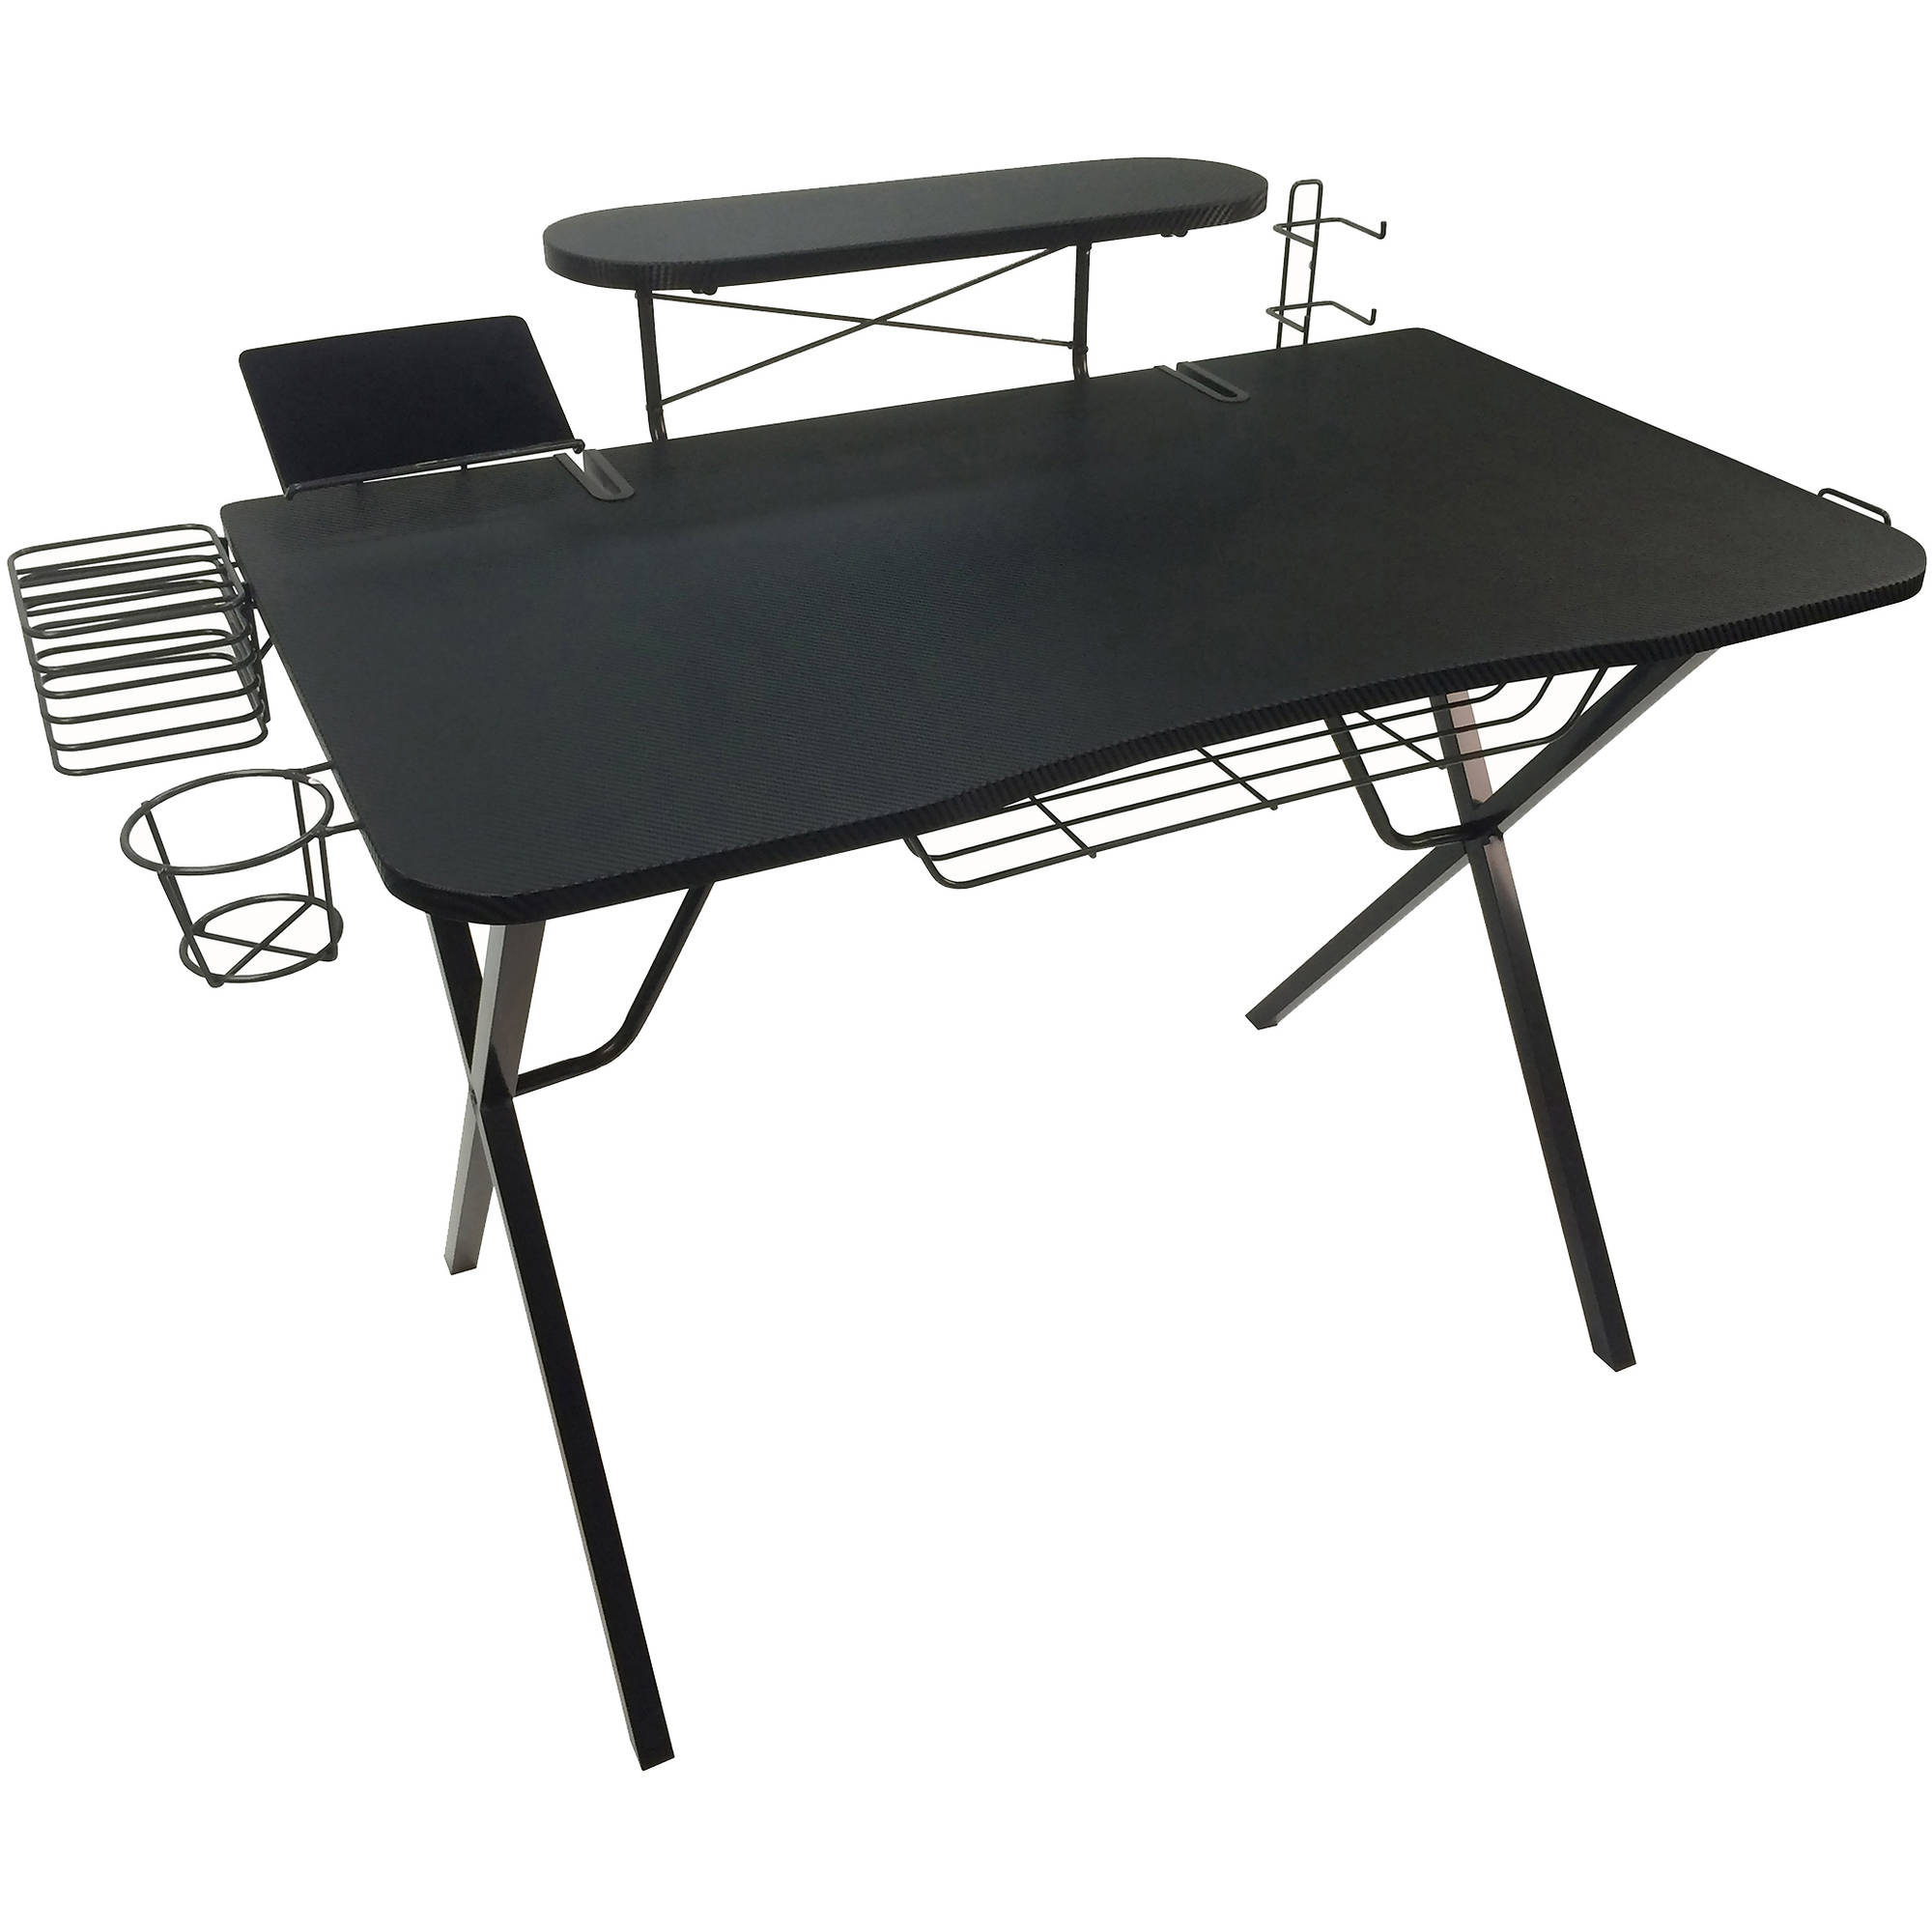 Fantastic Atlantic Professional Gaming Desk Pro With Built In Storage Metal Accessory Holders And Cable Slots Download Free Architecture Designs Grimeyleaguecom